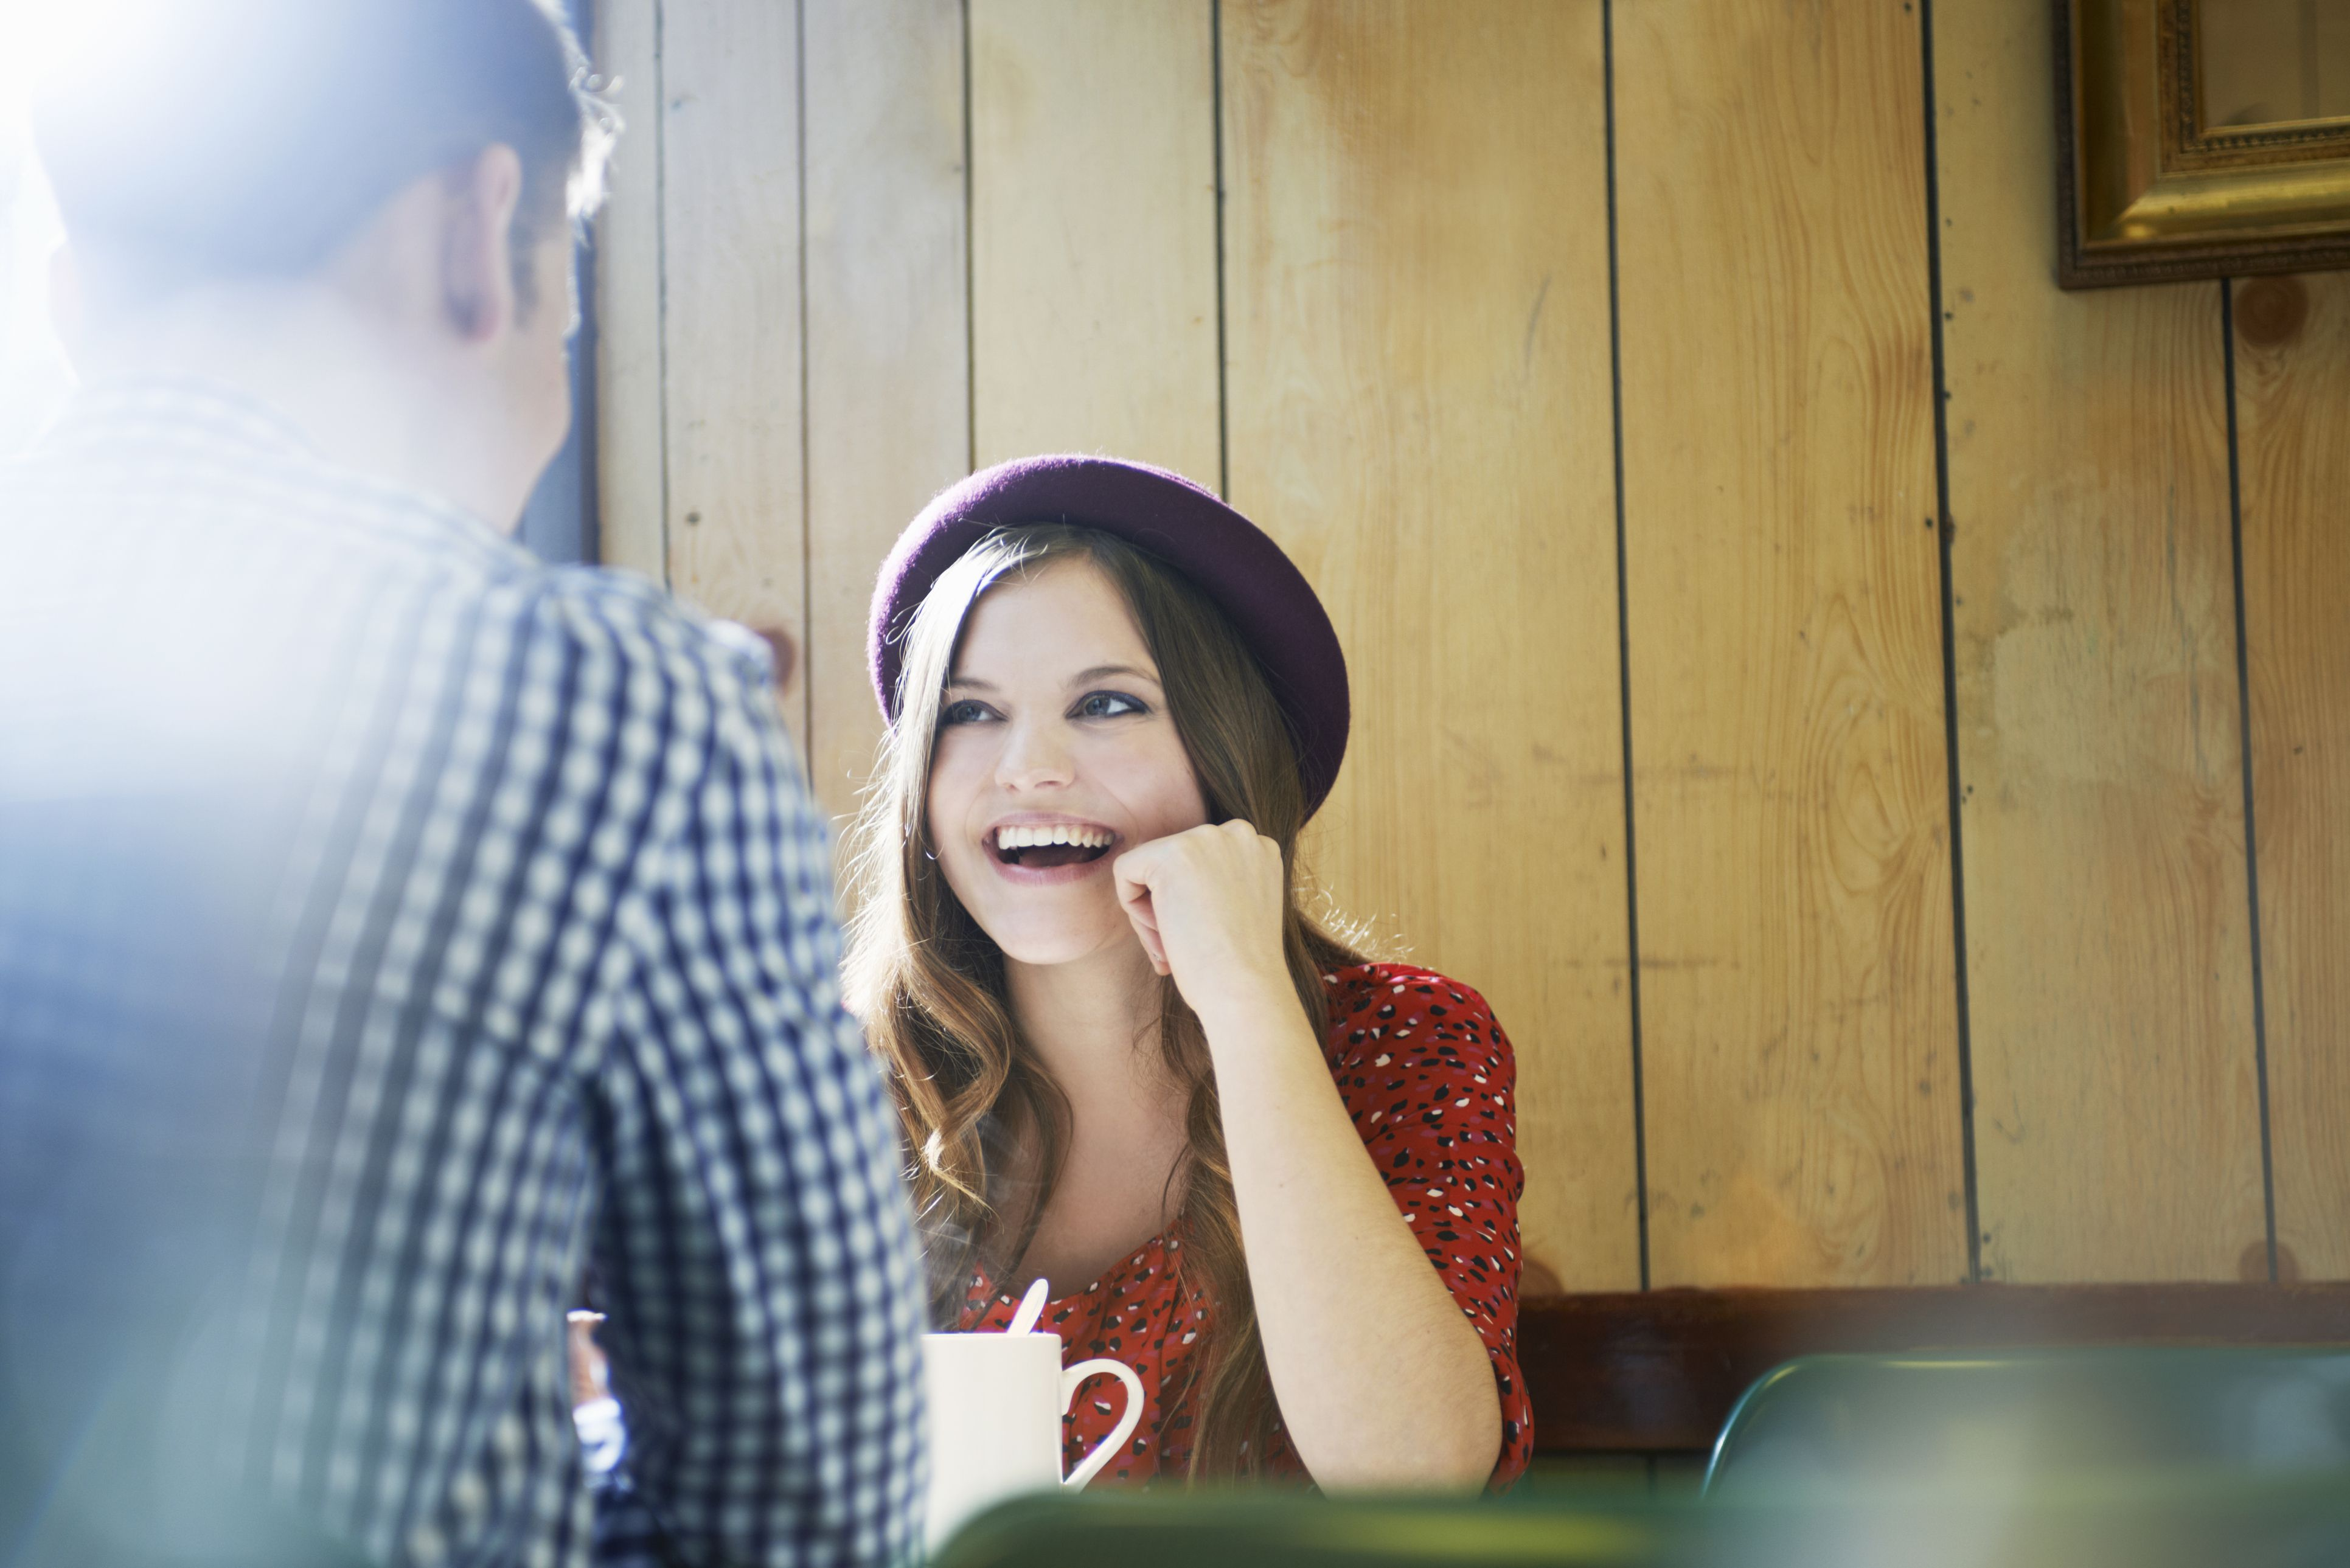 intimate questions to get to know someone